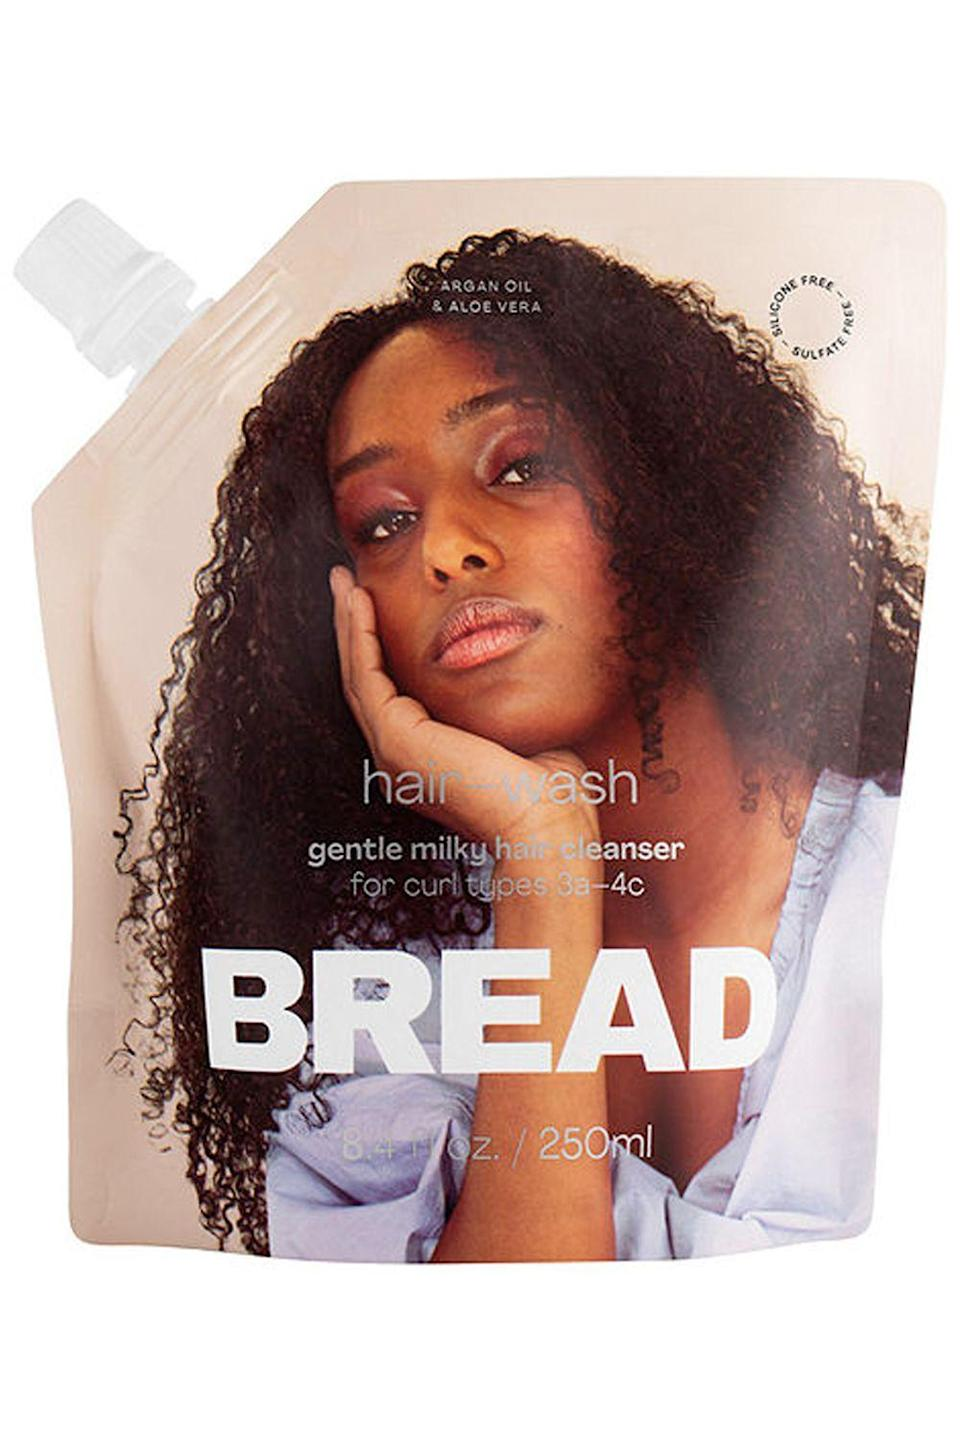 """<p><strong>BREAD BEAUTY SUPPLY</strong></p><p>sephora.com</p><p><strong>$20.00</strong></p><p><a href=""""https://go.redirectingat.com?id=74968X1596630&url=https%3A%2F%2Fwww.sephora.com%2Fproduct%2Fbread-beauty-hair-wash-gentle-milky-hair-cleanser-P460549&sref=https%3A%2F%2Fwww.cosmopolitan.com%2Fstyle-beauty%2Fbeauty%2Fg34358051%2Fblack-owned-hair-products%2F"""" rel=""""nofollow noopener"""" target=""""_blank"""" data-ylk=""""slk:Shop Now"""" class=""""link rapid-noclick-resp"""">Shop Now</a></p><p>You're not going to get a full-on lather with this Black-owned hair product, but don't get confused—it's still putting in work. The cleanser deposits a creamy, lightweight mixture onto your hair that's packed with <a href=""""https://www.cosmopolitan.com/style-beauty/beauty/g33444658/best-oils-for-curly-hair/"""" rel=""""nofollow noopener"""" target=""""_blank"""" data-ylk=""""slk:argan oil"""" class=""""link rapid-noclick-resp"""">argan oil</a>, aloe vera juice, and lemon tea tree oil. <strong>The result is silky, clean, and healthy hair</strong> that you won't be able to stop playing with.</p>"""